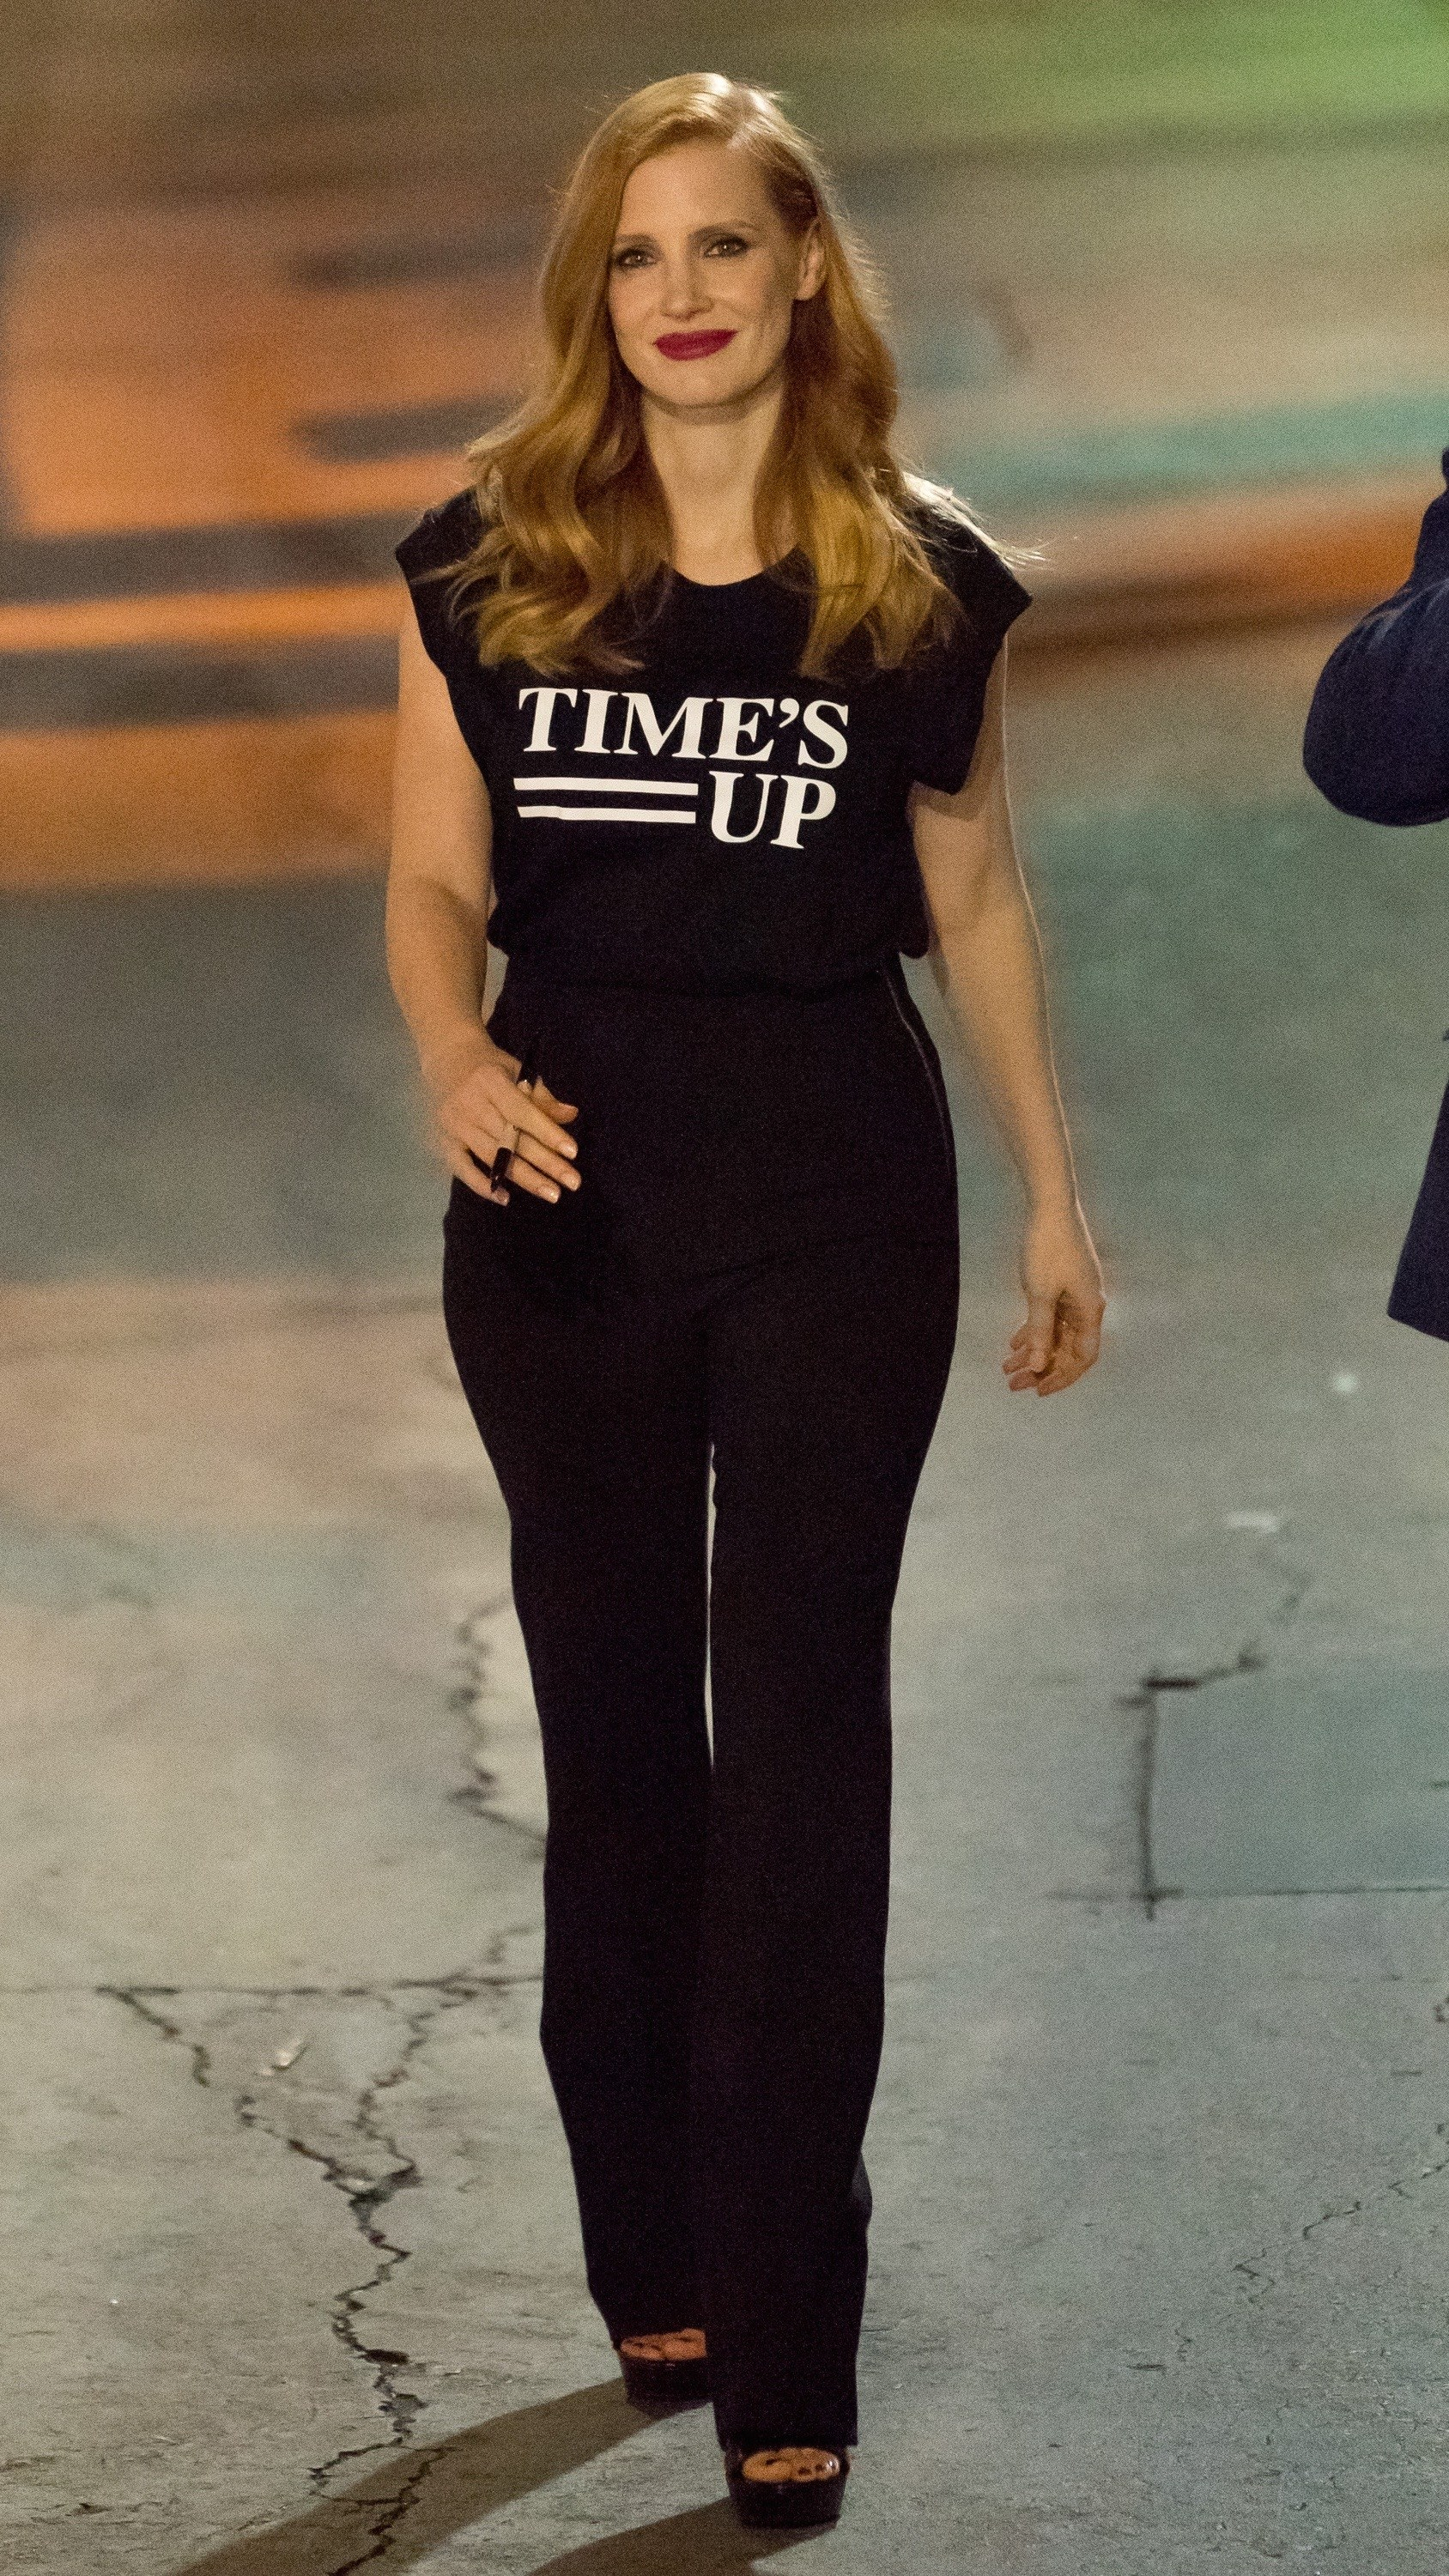 Jessica Chastain in a #TimesUp tee (Photo: Getty Images)